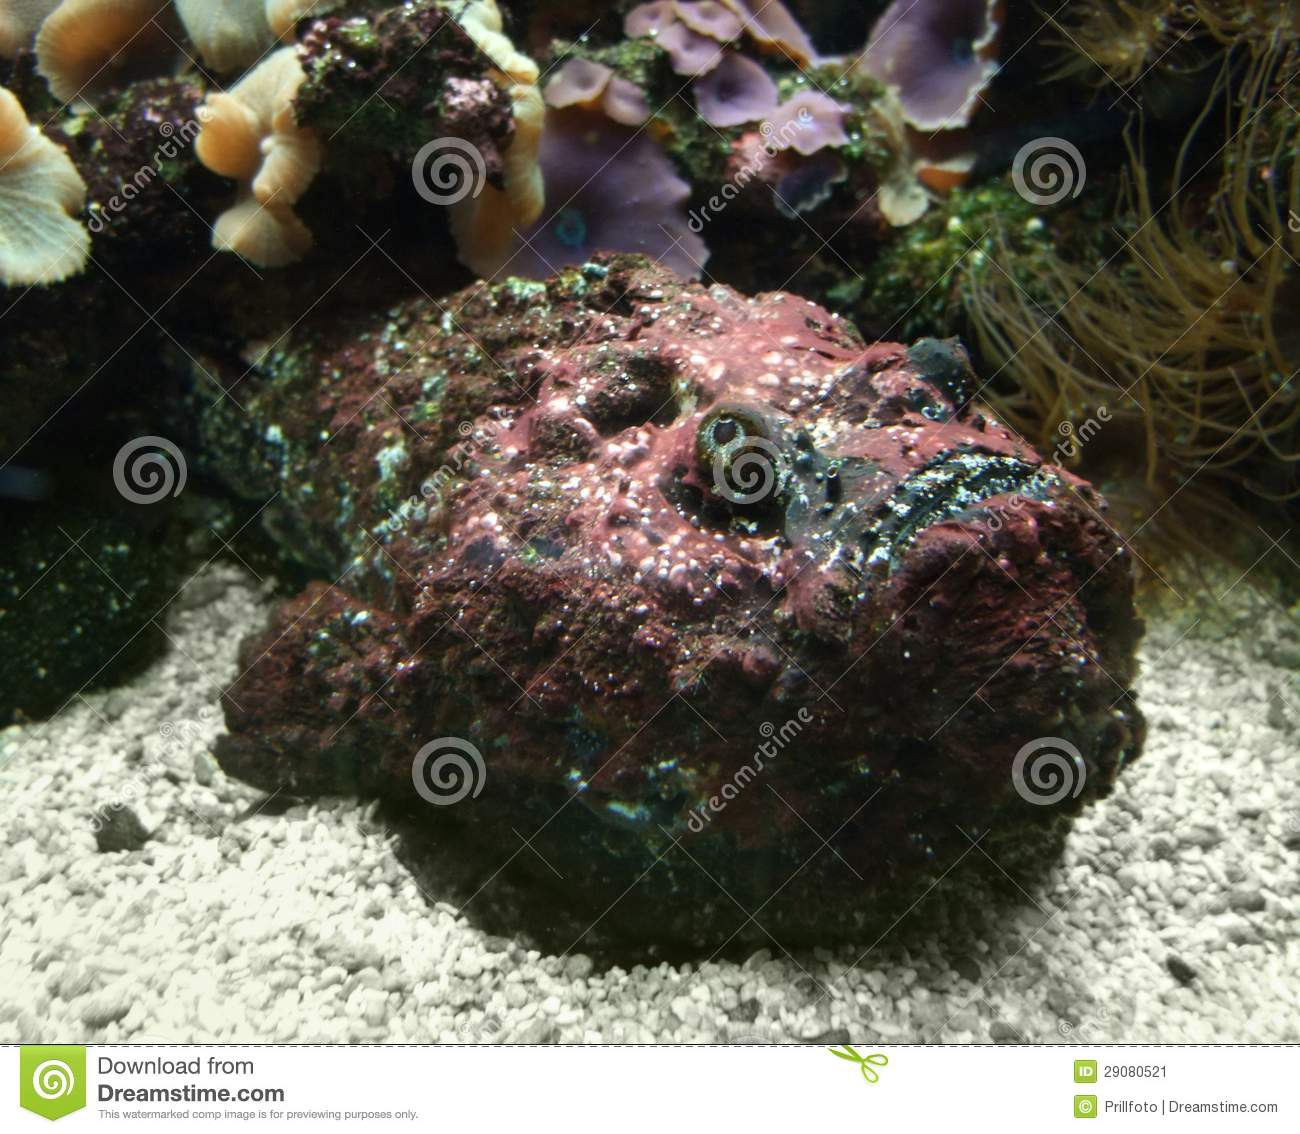 Red Stonefish on the ground